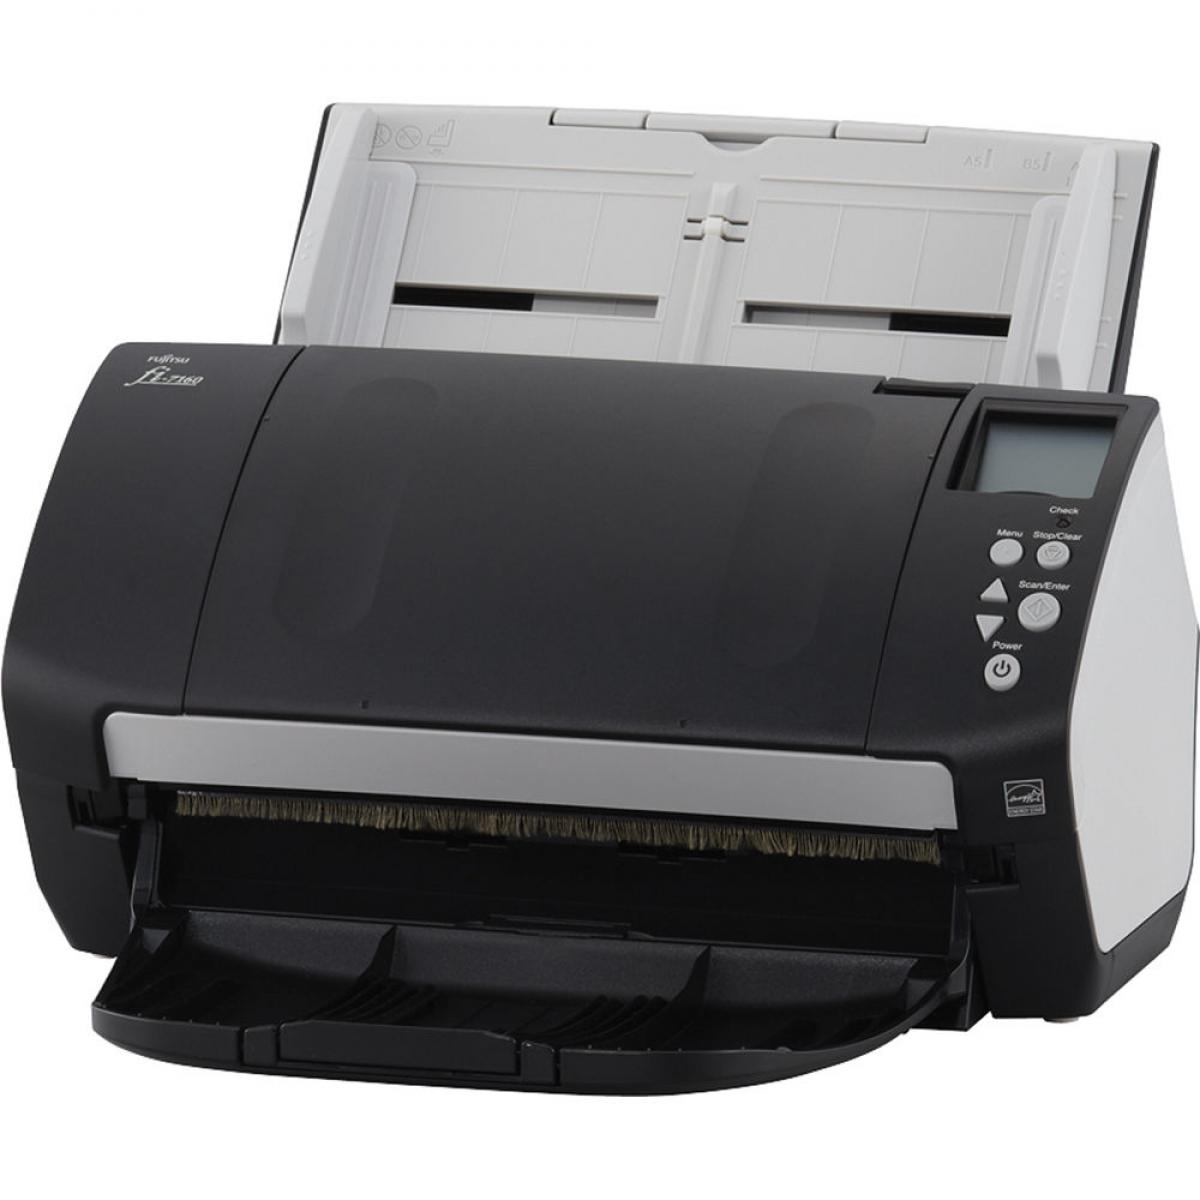 download document scanner for pc